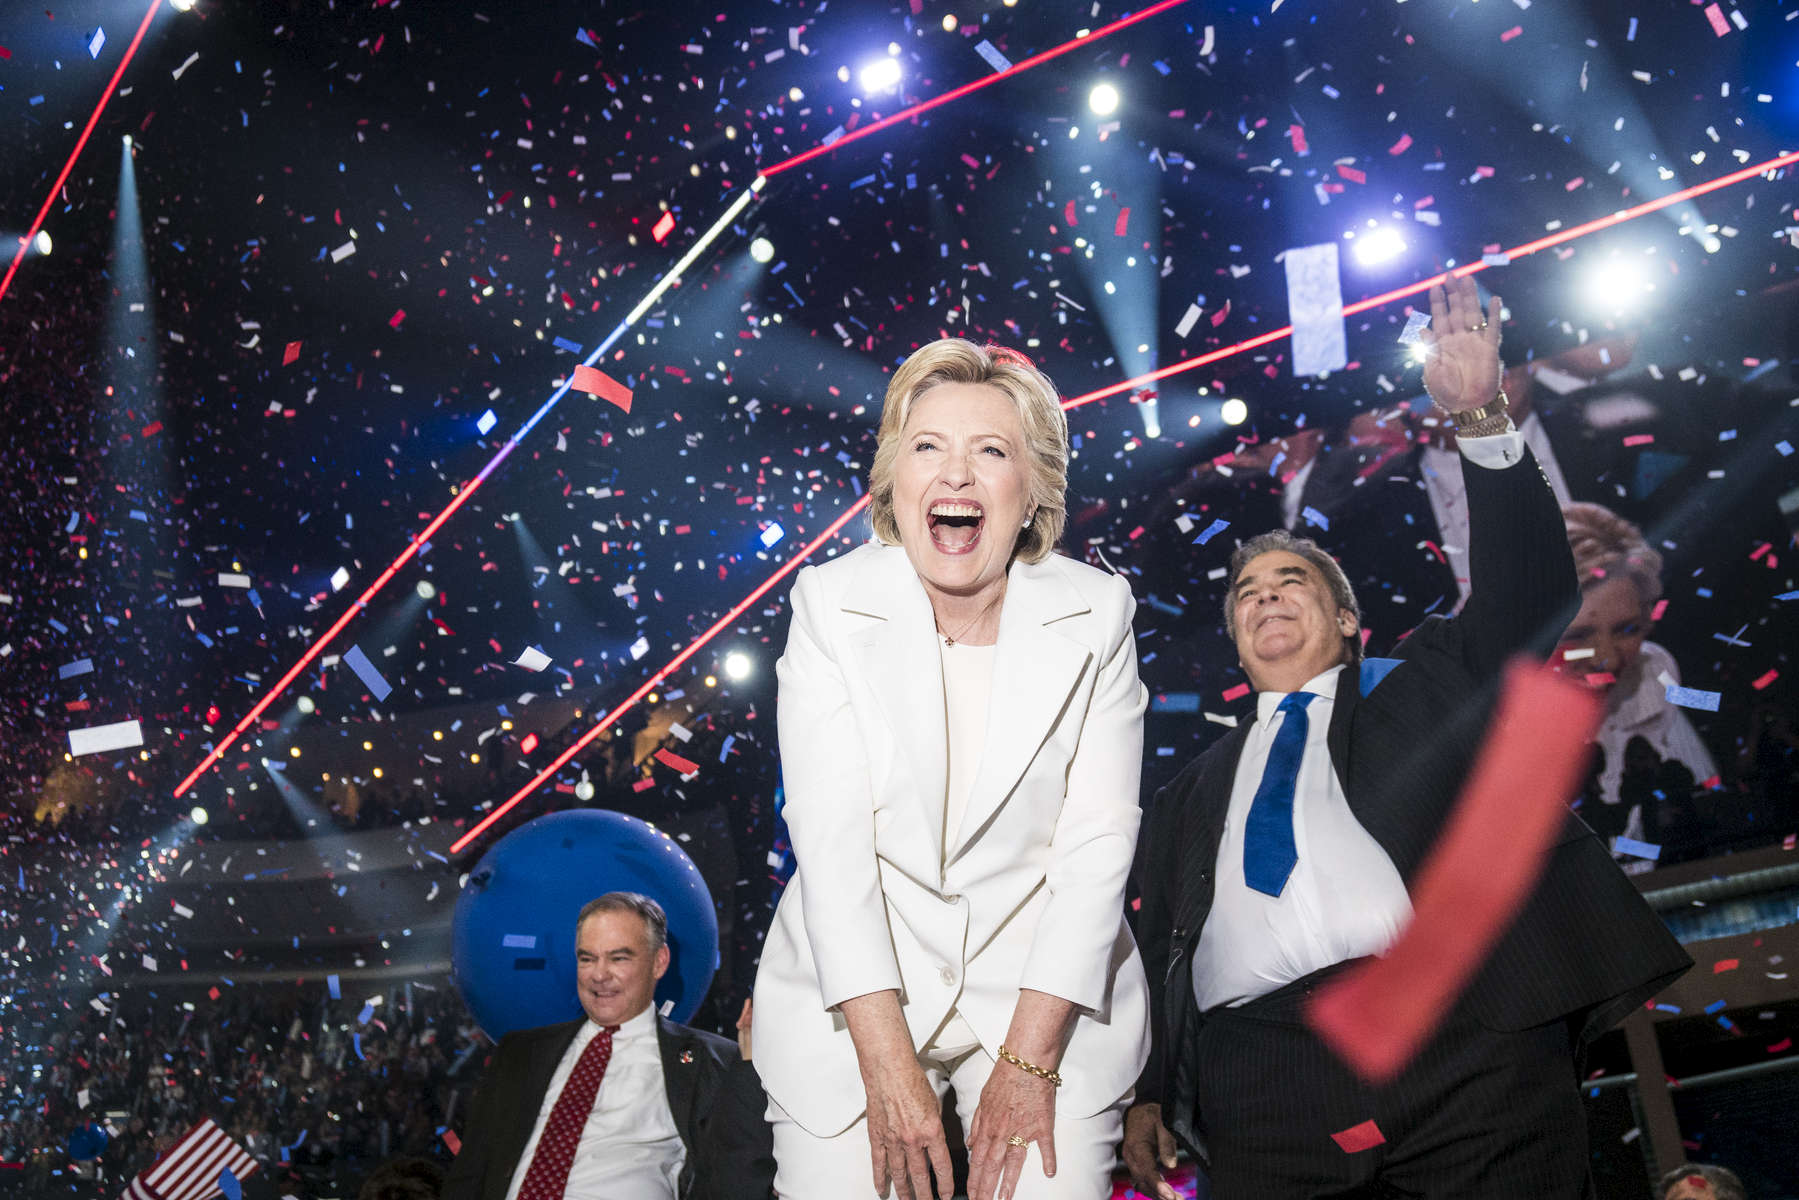 Philadelphia, PA - July 28, 2016: Democratic Presidential Candidate Hillary Clinton celebrates her nomination following the completion of the DNC on July 28, 2016 in Philadelphia, PA.